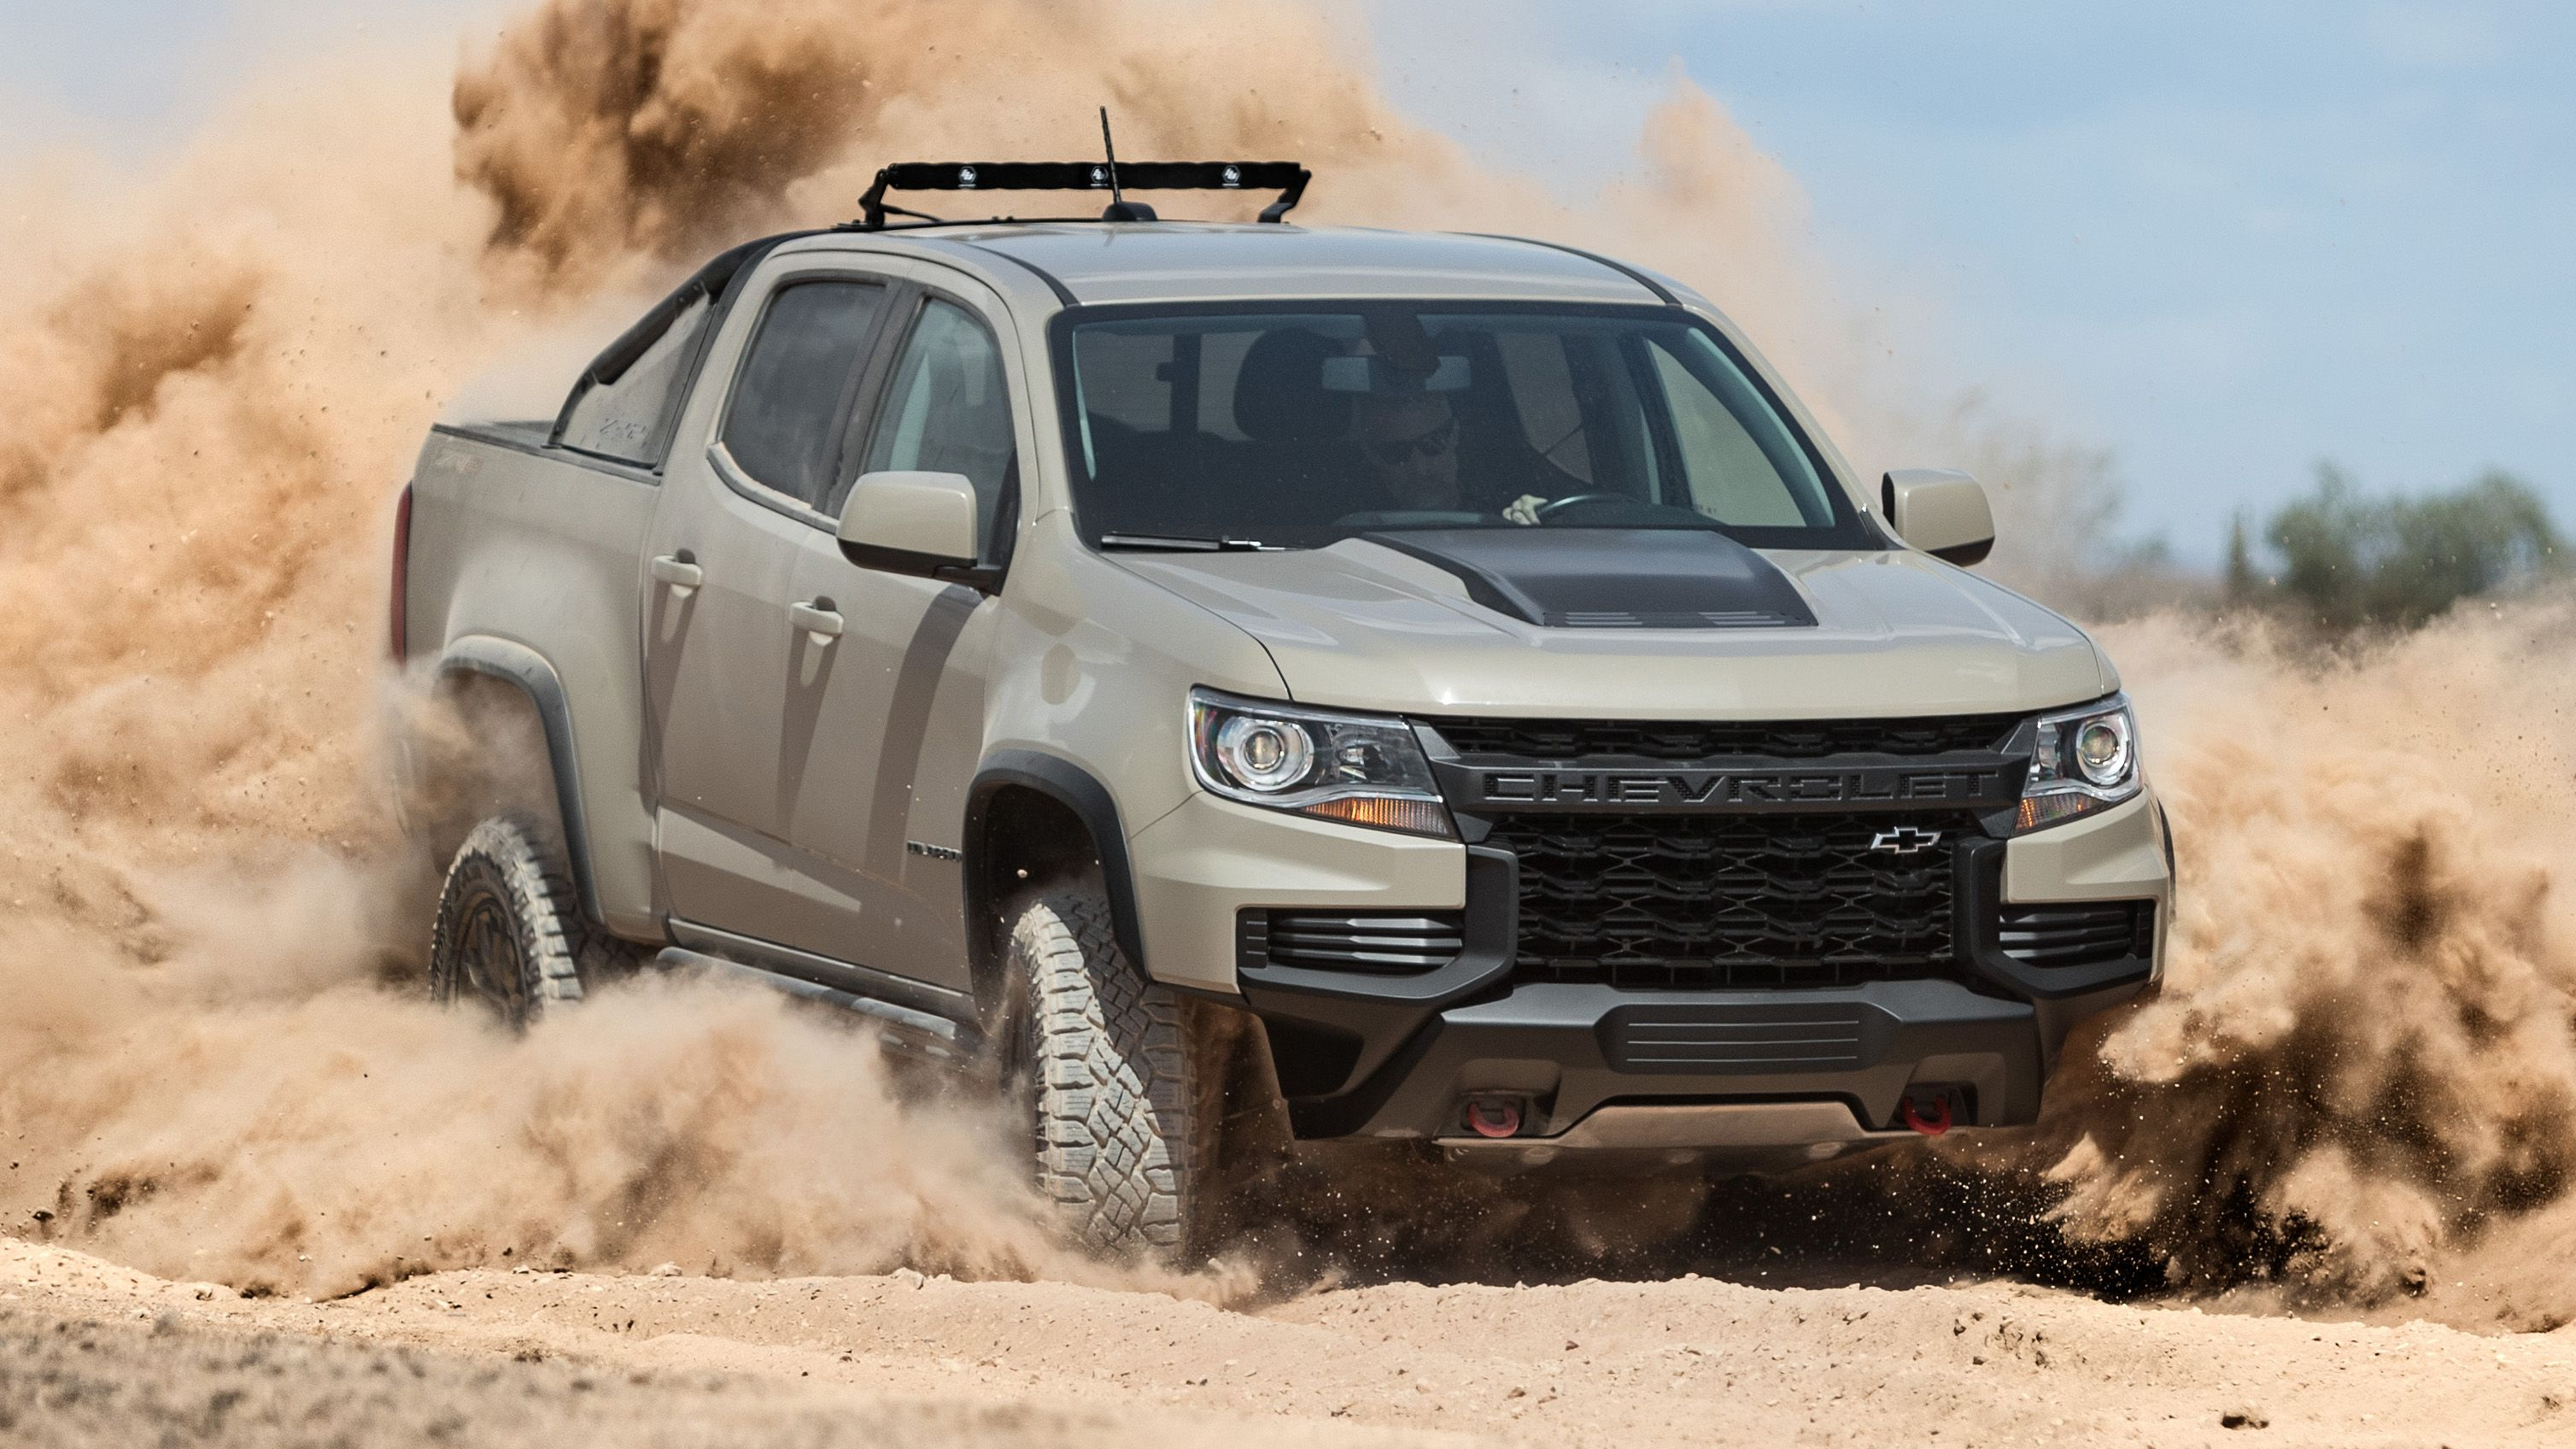 2021 Chevrolet Colorado Zr2 Unveiled With Updated Design